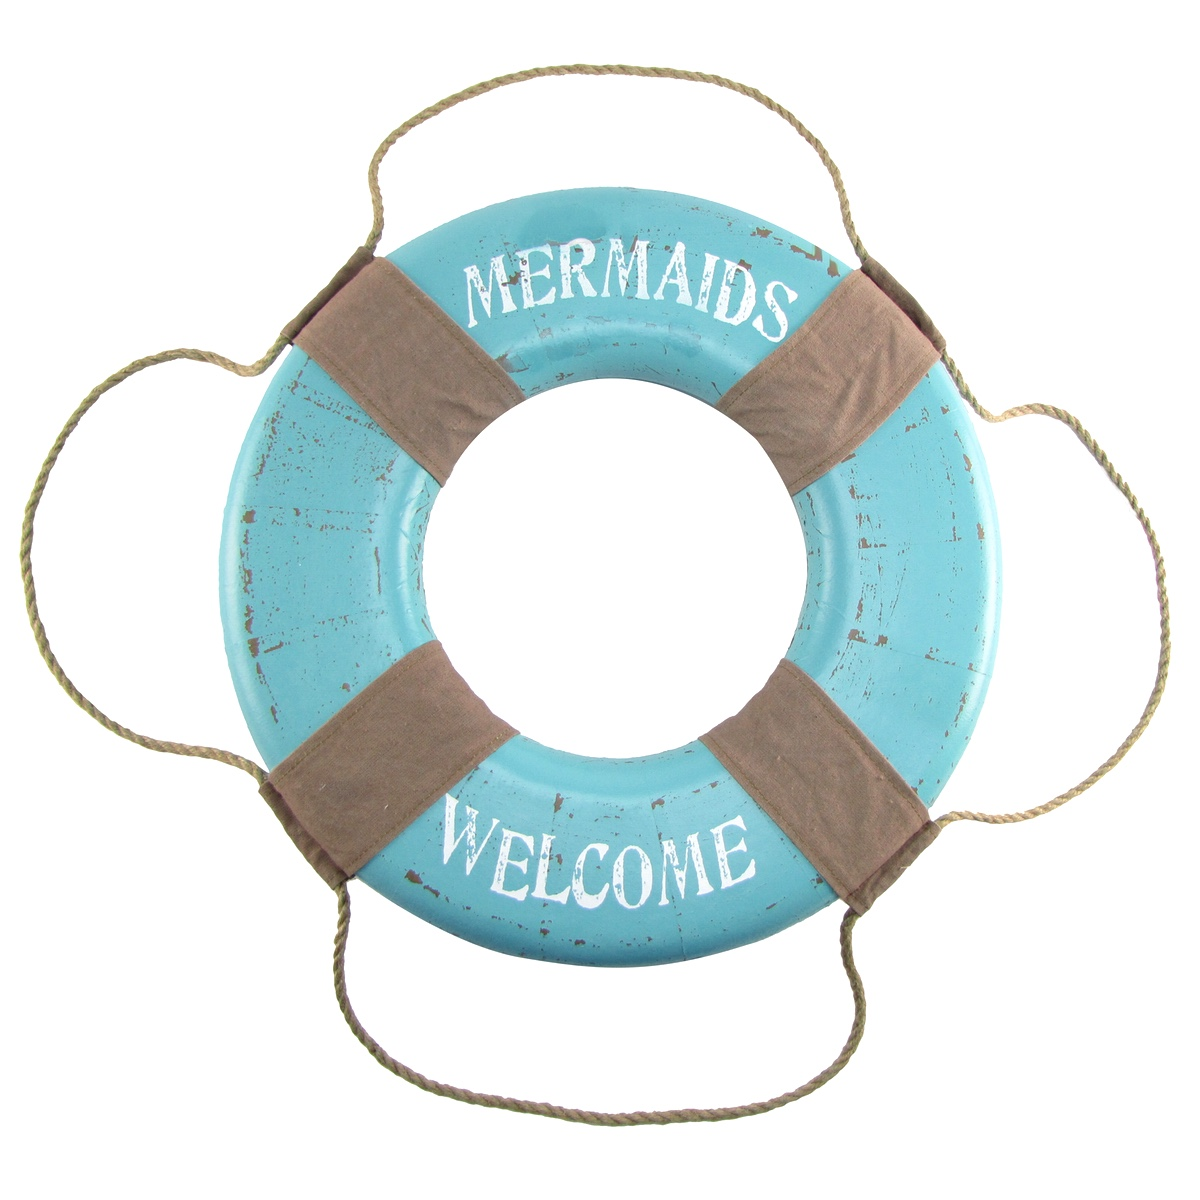 Mermaids Welcome Life Saver Preserver Ring Big Nautical Beach Mermaid Wall Decor